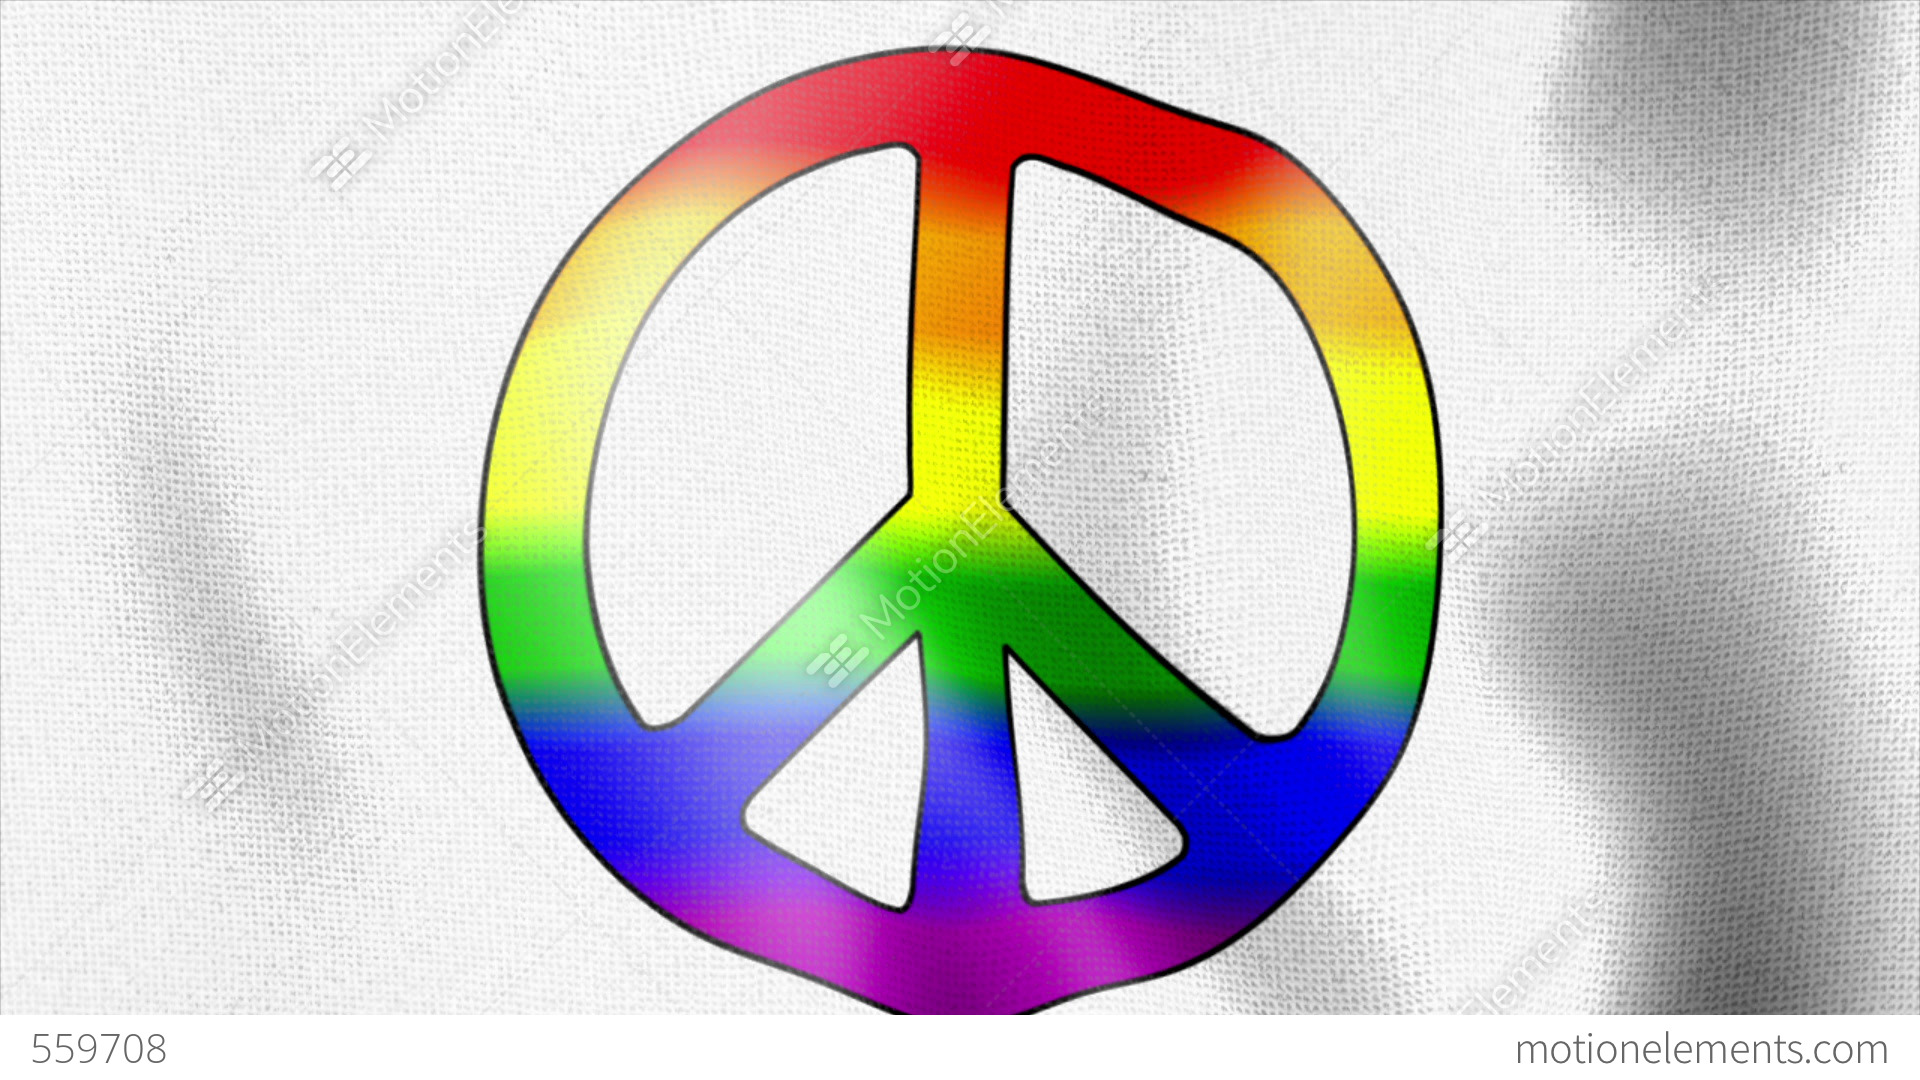 Waving flag rainbow peace sign stock animation 559708 waving flag rainbow peace sign stock video footage biocorpaavc